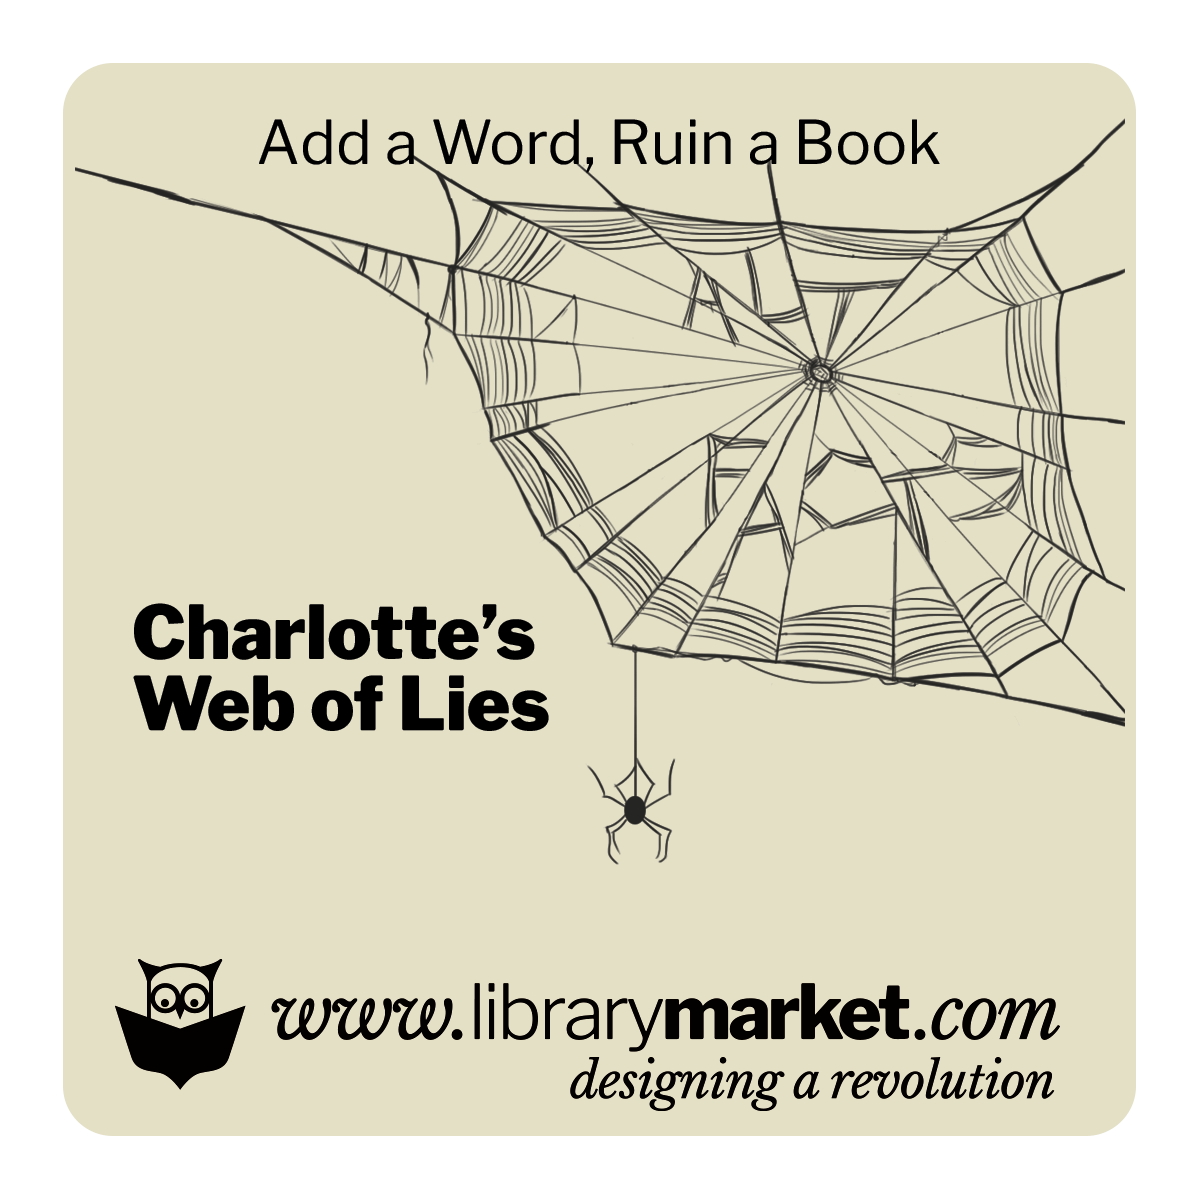 Library Market Add-a-Word Coaster - Charlottes Web of Lies